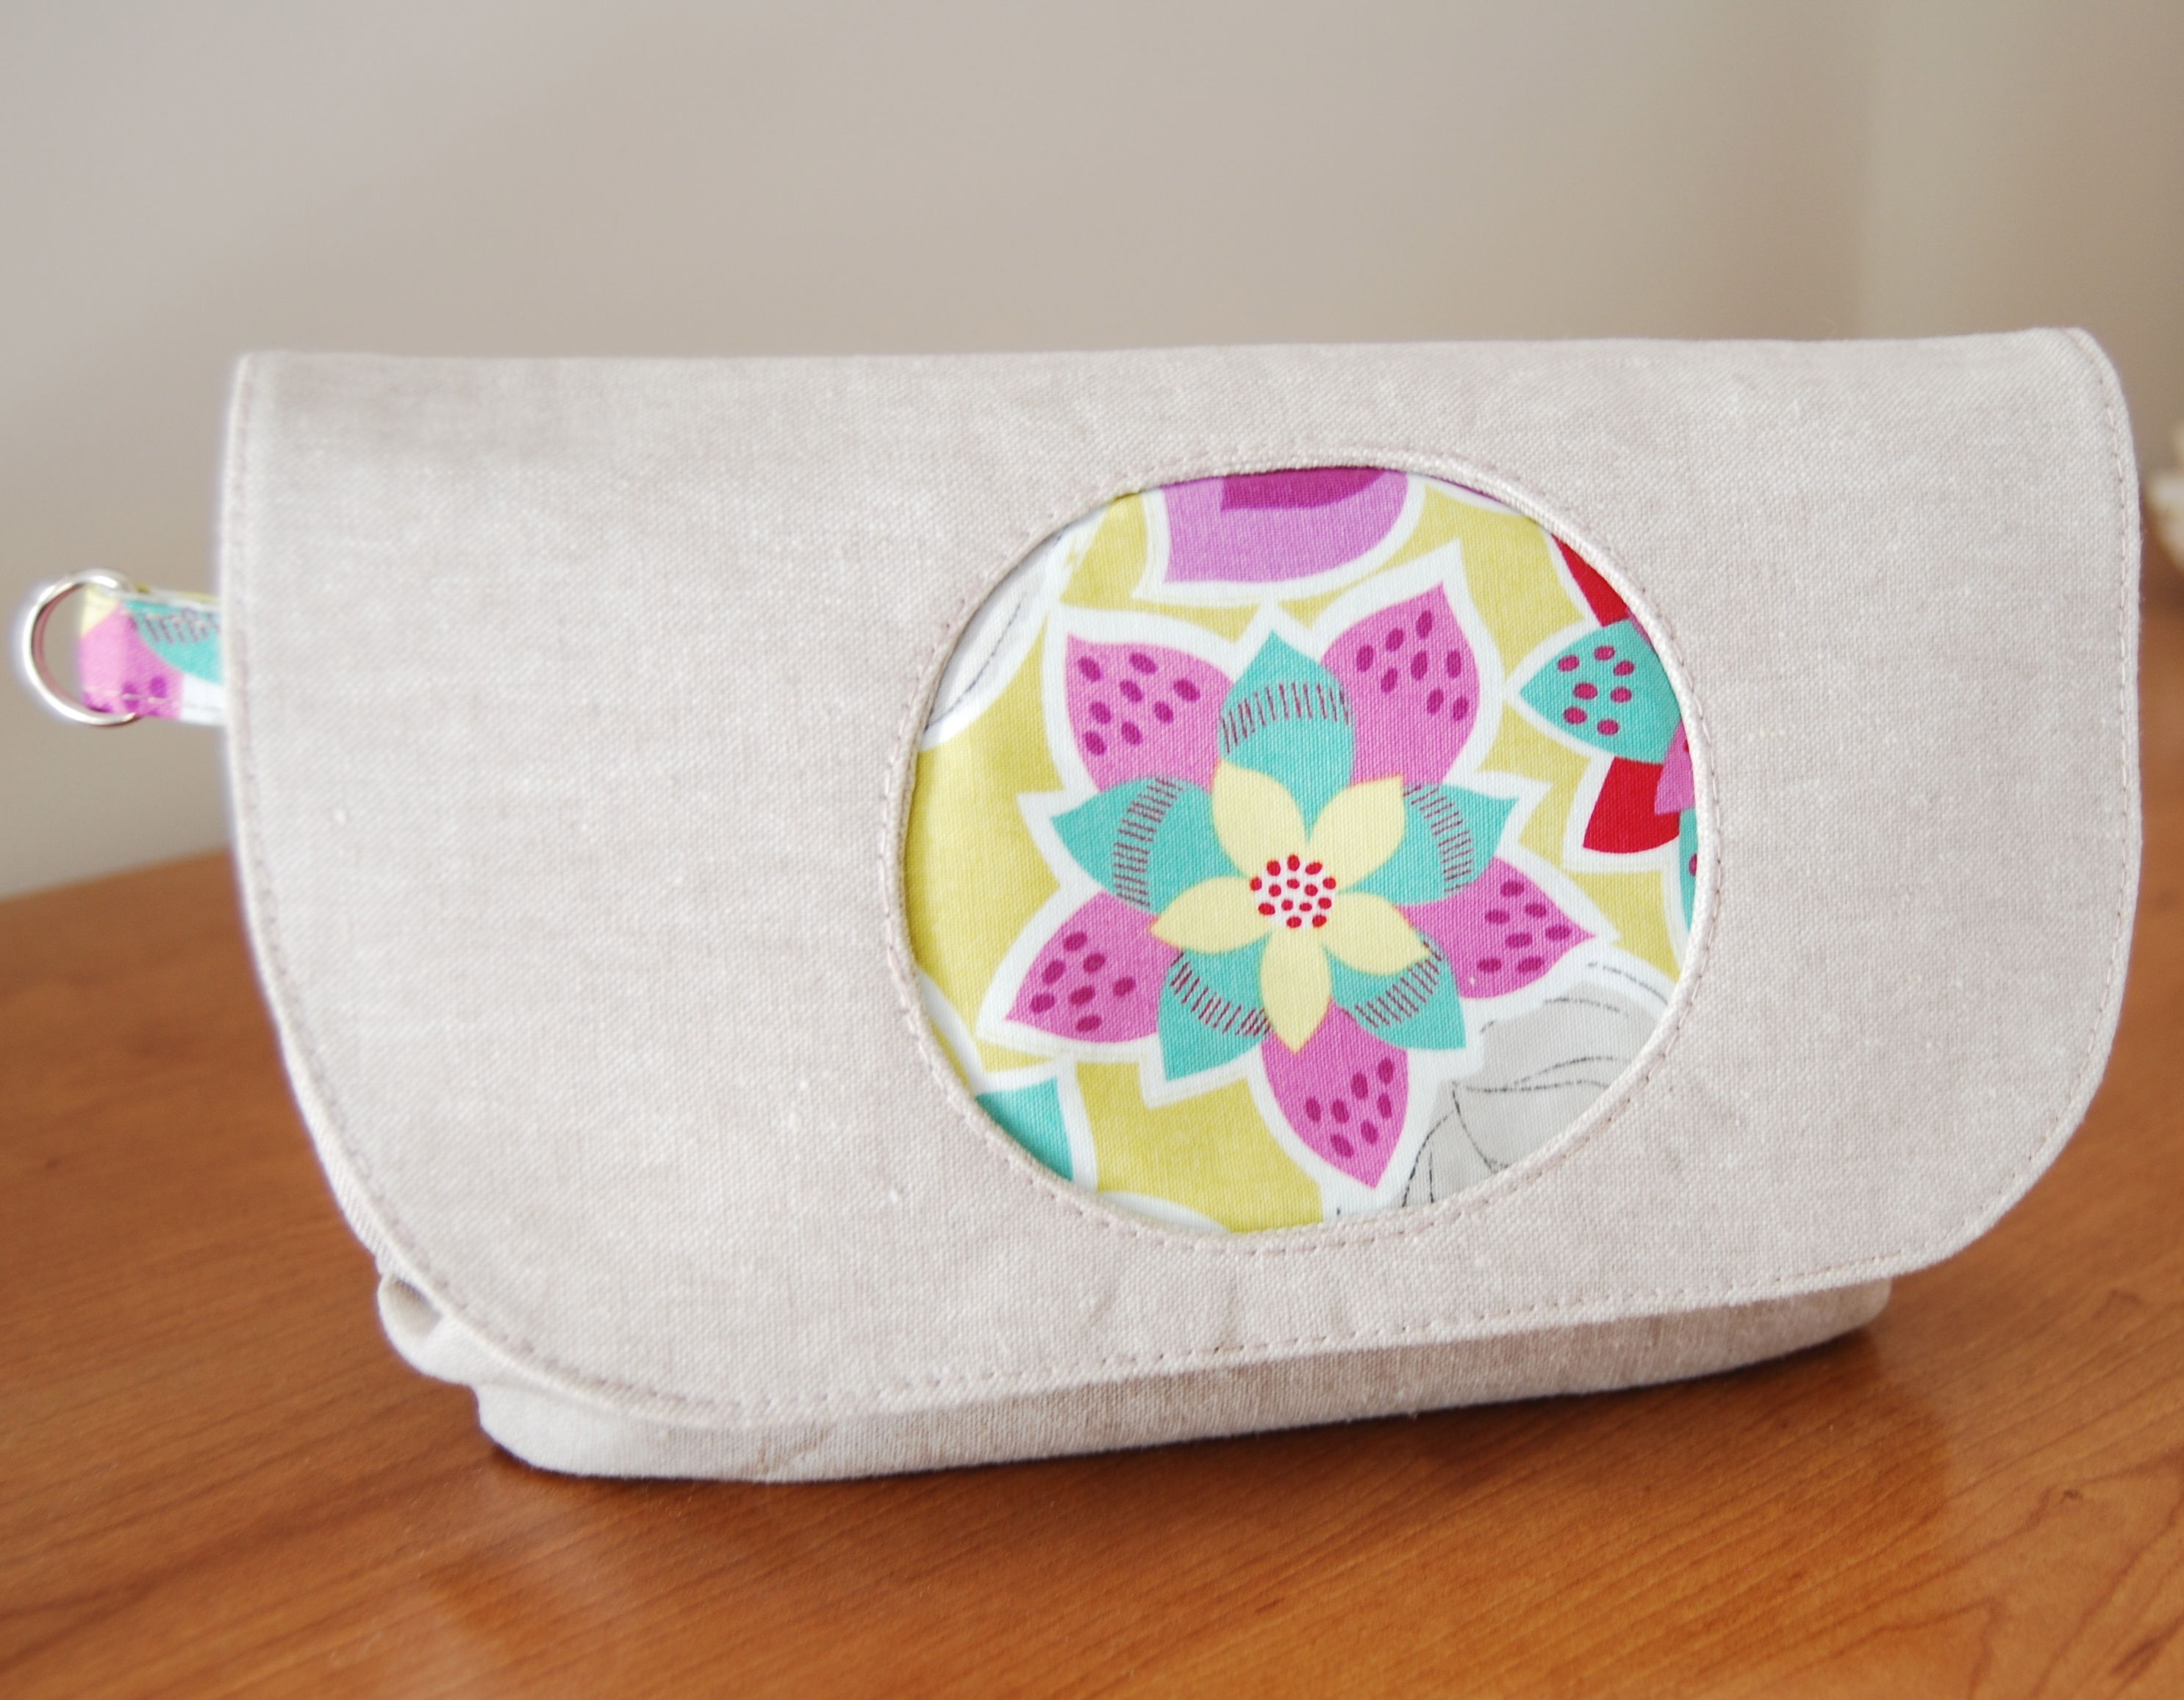 Morning Glory Pouch, a free pattern by Blue Calla Patterns | bag ...